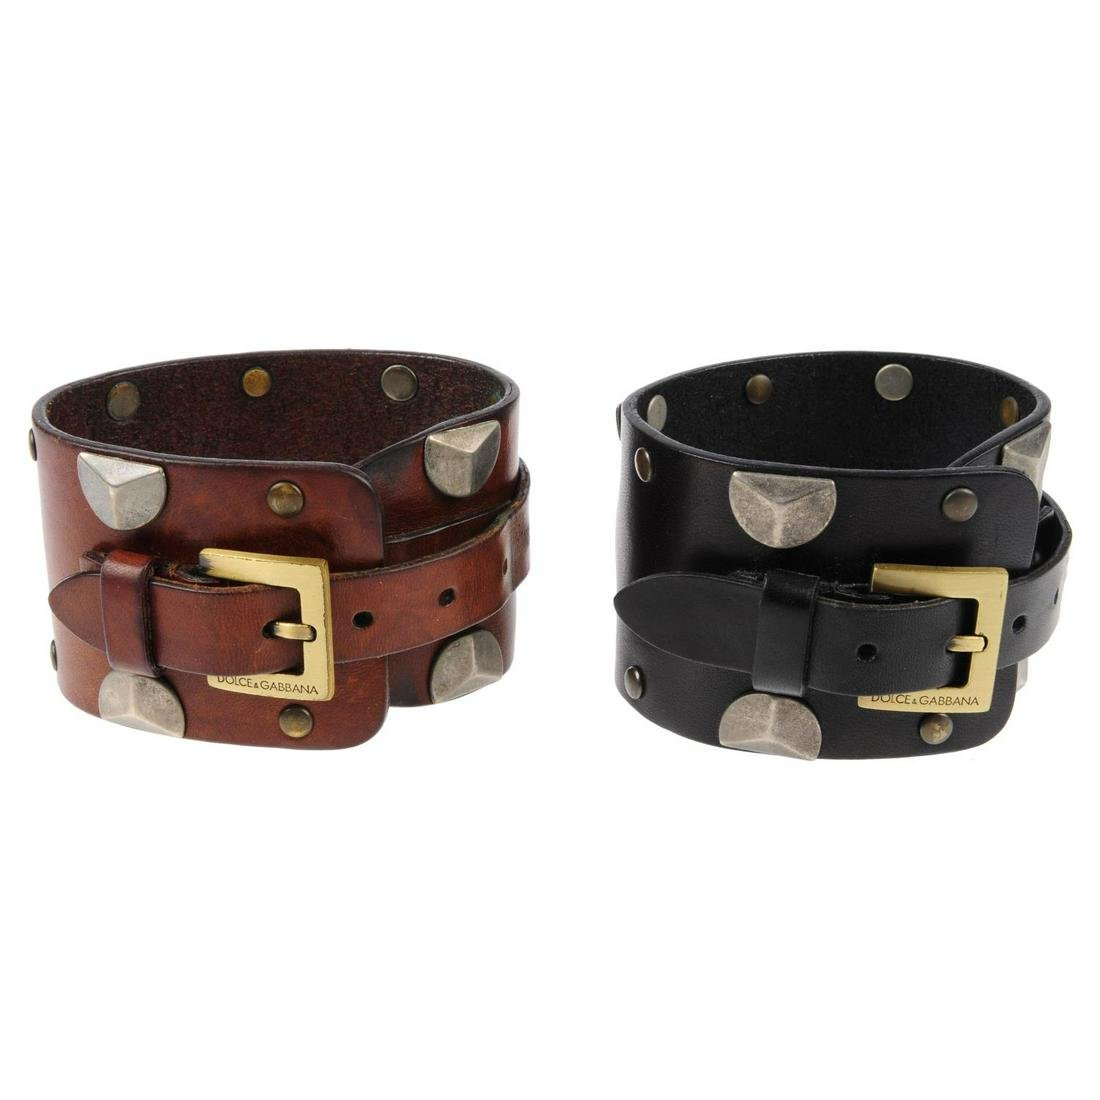 DOLCE & GABBANA - two leather cuffs. Both of the same